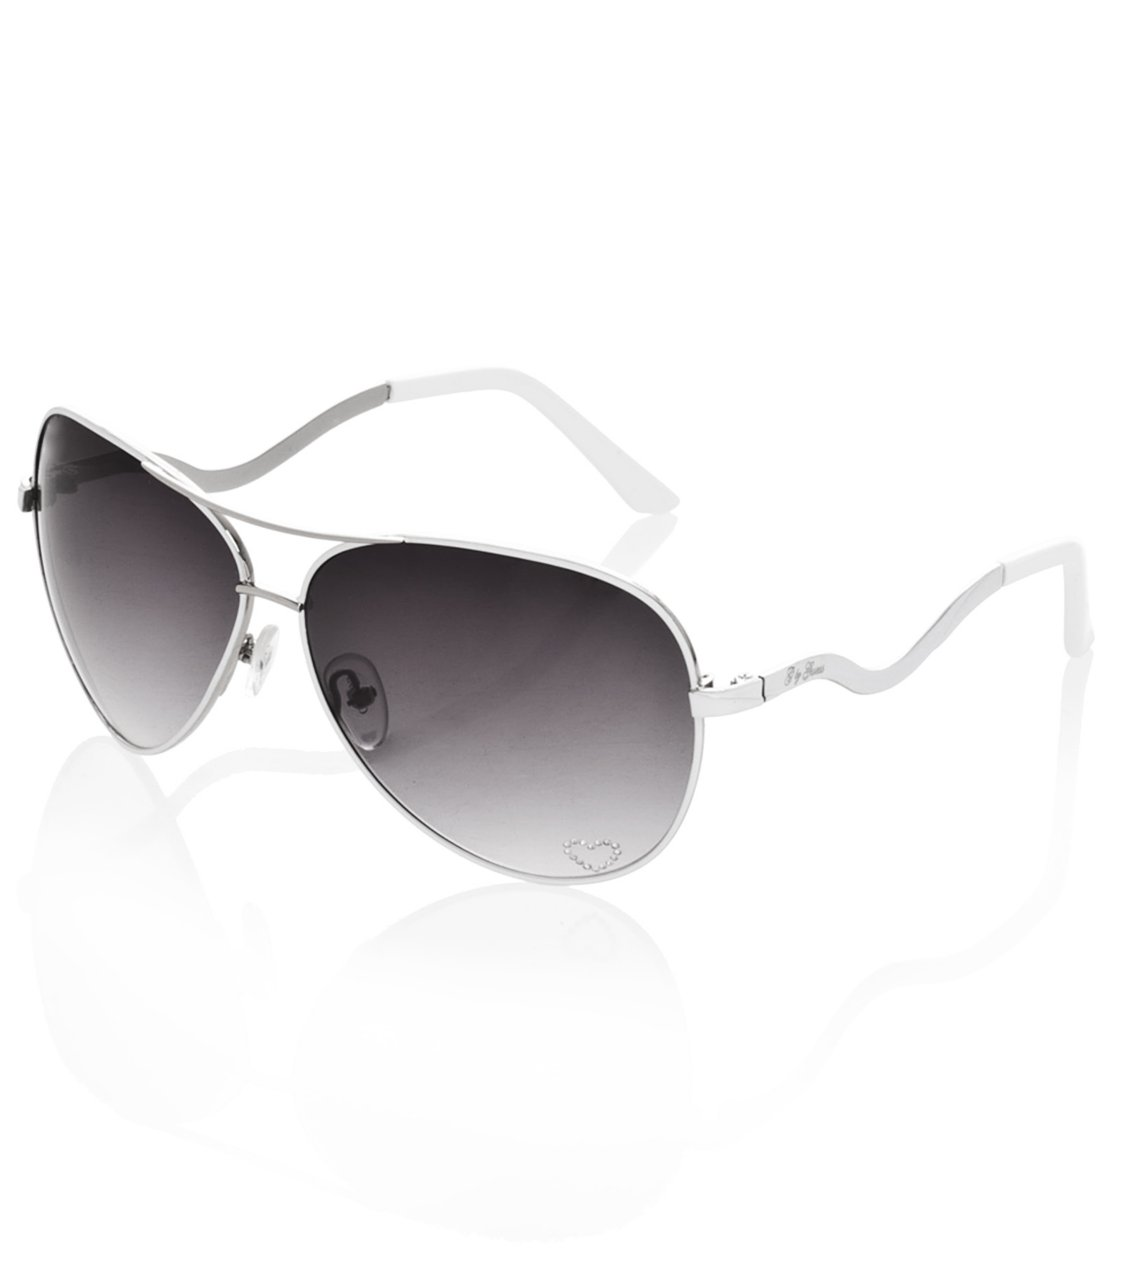 G by GUESS Aviator Sunglasses, WHITE